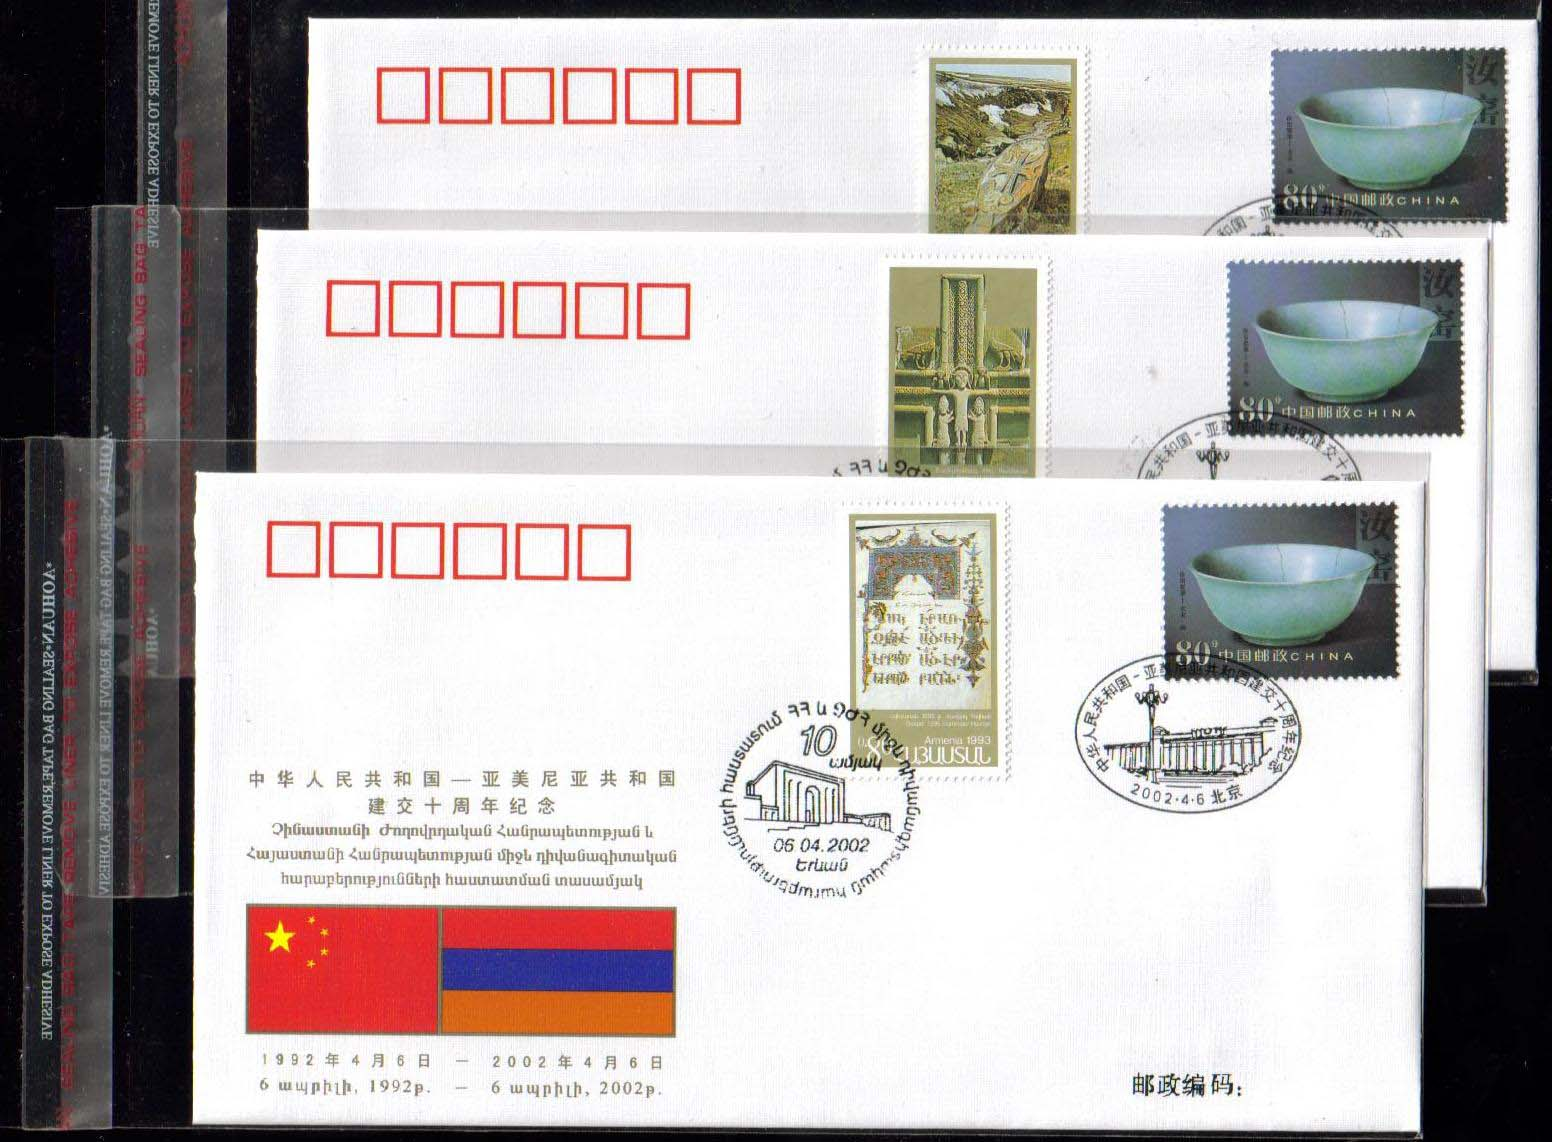 <font=483>Armenia China Joint issue Covers, set of 3  <br>Each cover has one Chinese and one Armenian stamp<br>These covers were produced in April 2002 and the entire stock was sent to China.  We are lucky to find a few sets.  Each cover is housed in a special protective holder.<br> <a href=&quot;/shop/catalog/images/Armenia-China-Setof3-Envelopes.jpg&quot;>   <font color=green><b>View the image</b></a></font>